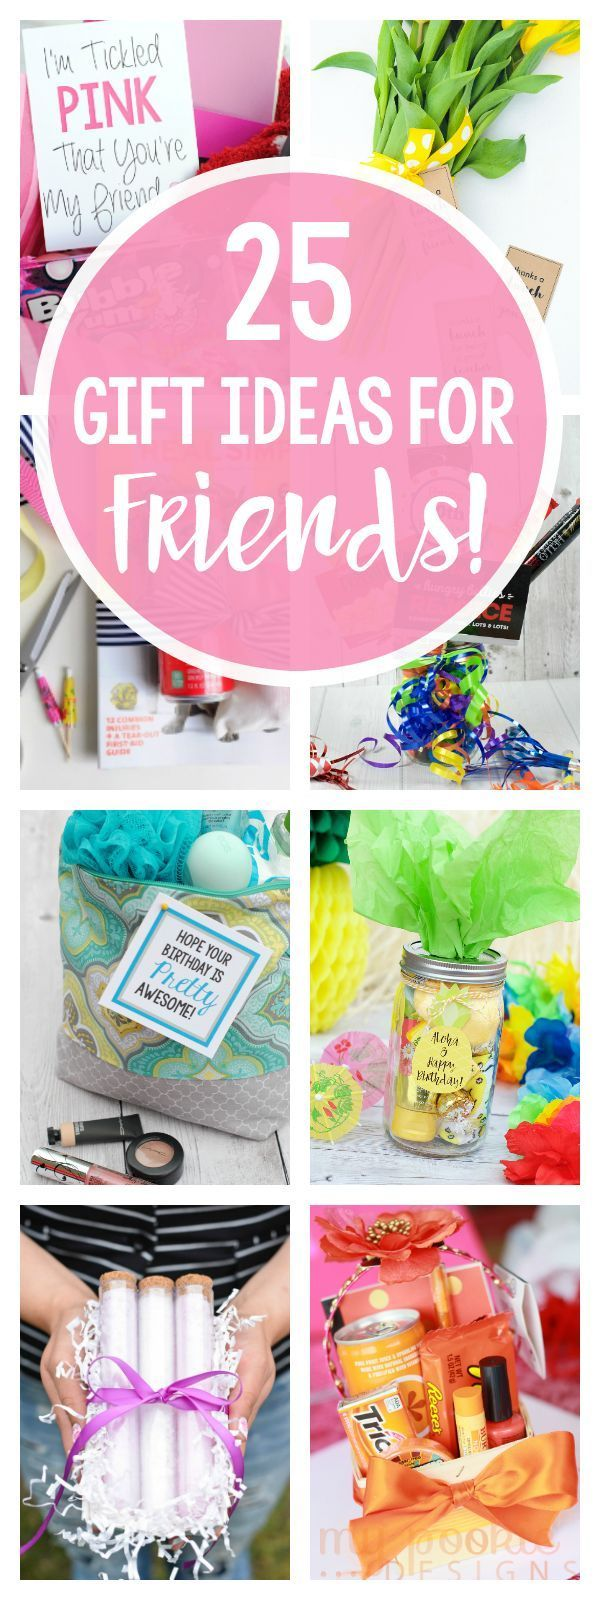 60 best friendship gifts images on pinterest friendship gifts 25 fun gifts for best friends for any occasion negle